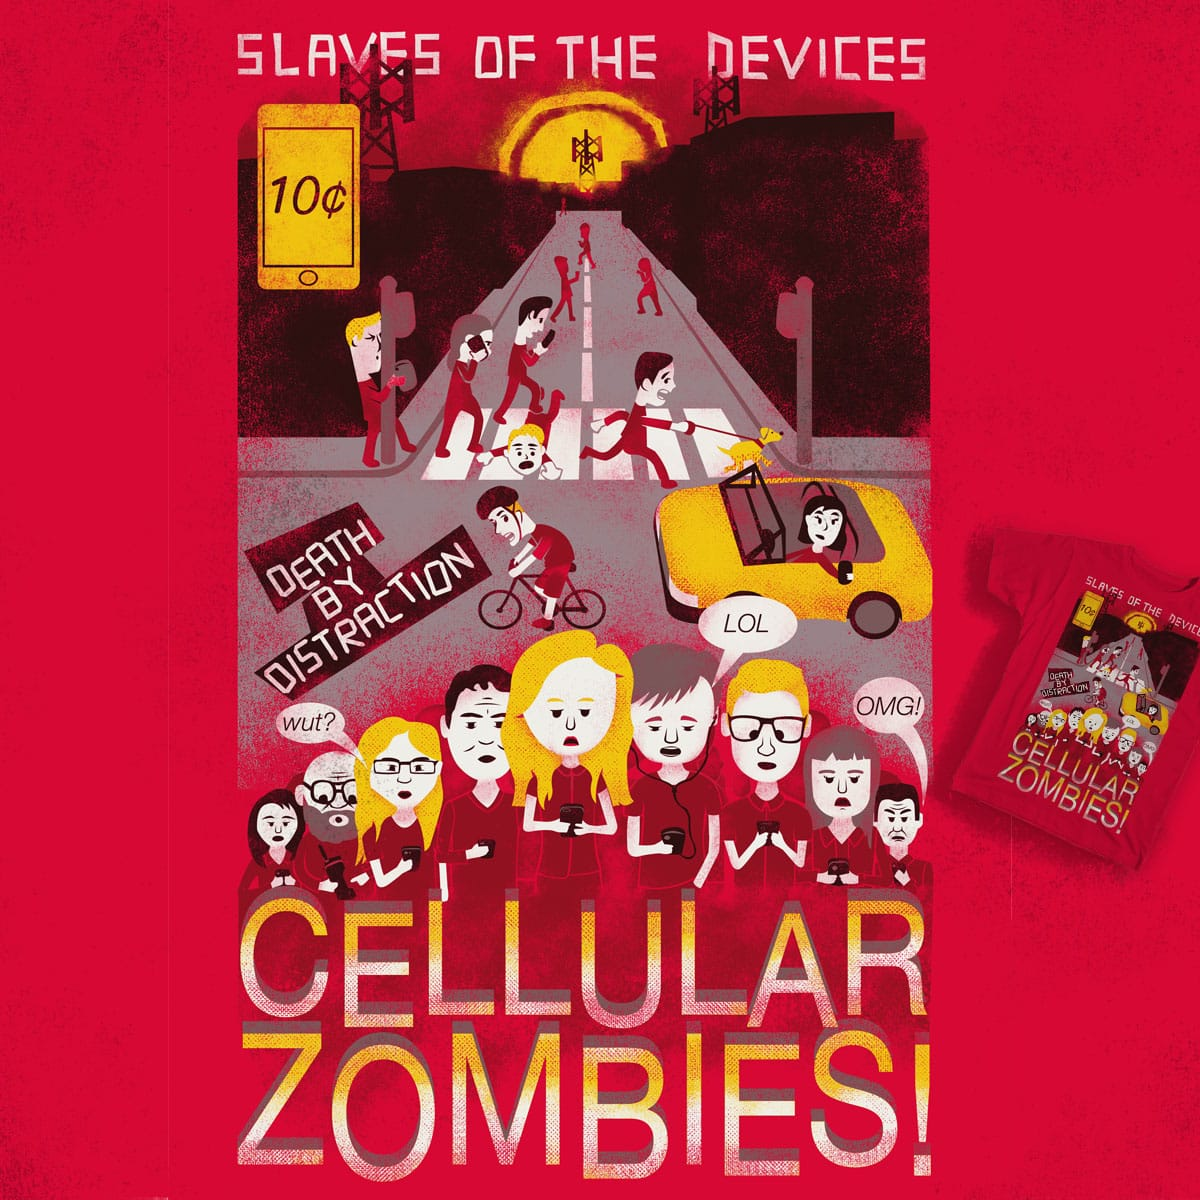 Cellular Zombies by soloyo and deliciousflavor on Threadless